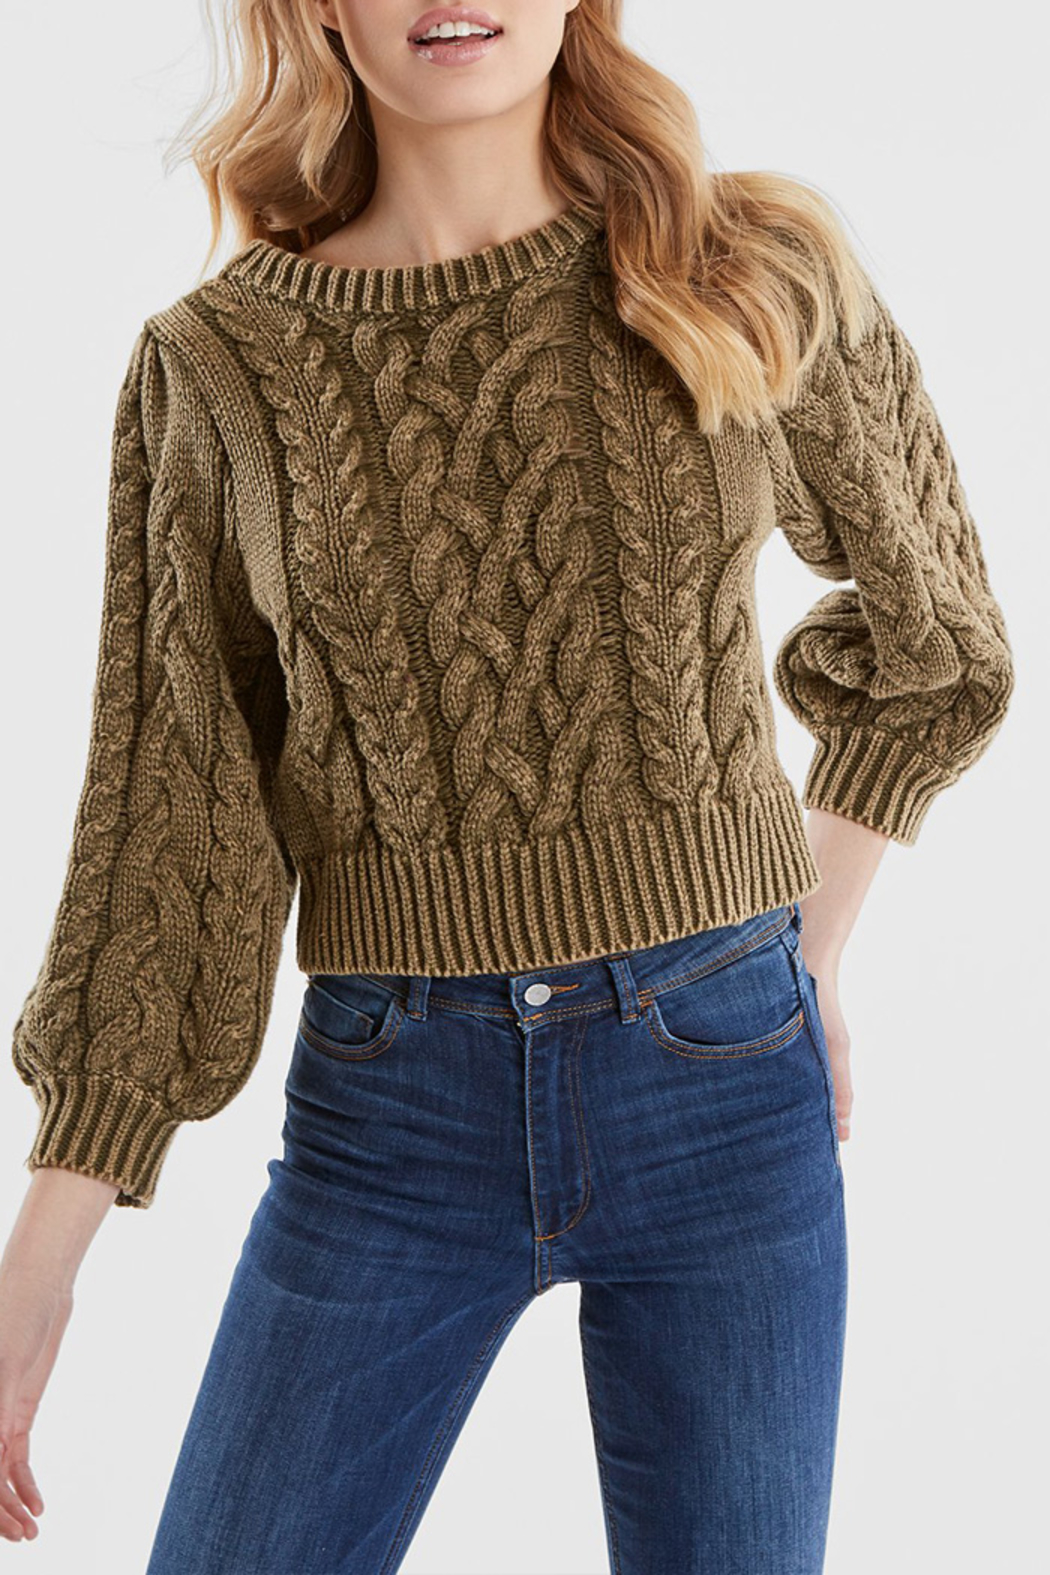 525 America DENIM WASH PUFF SLEEVE SWEATER - Main Image